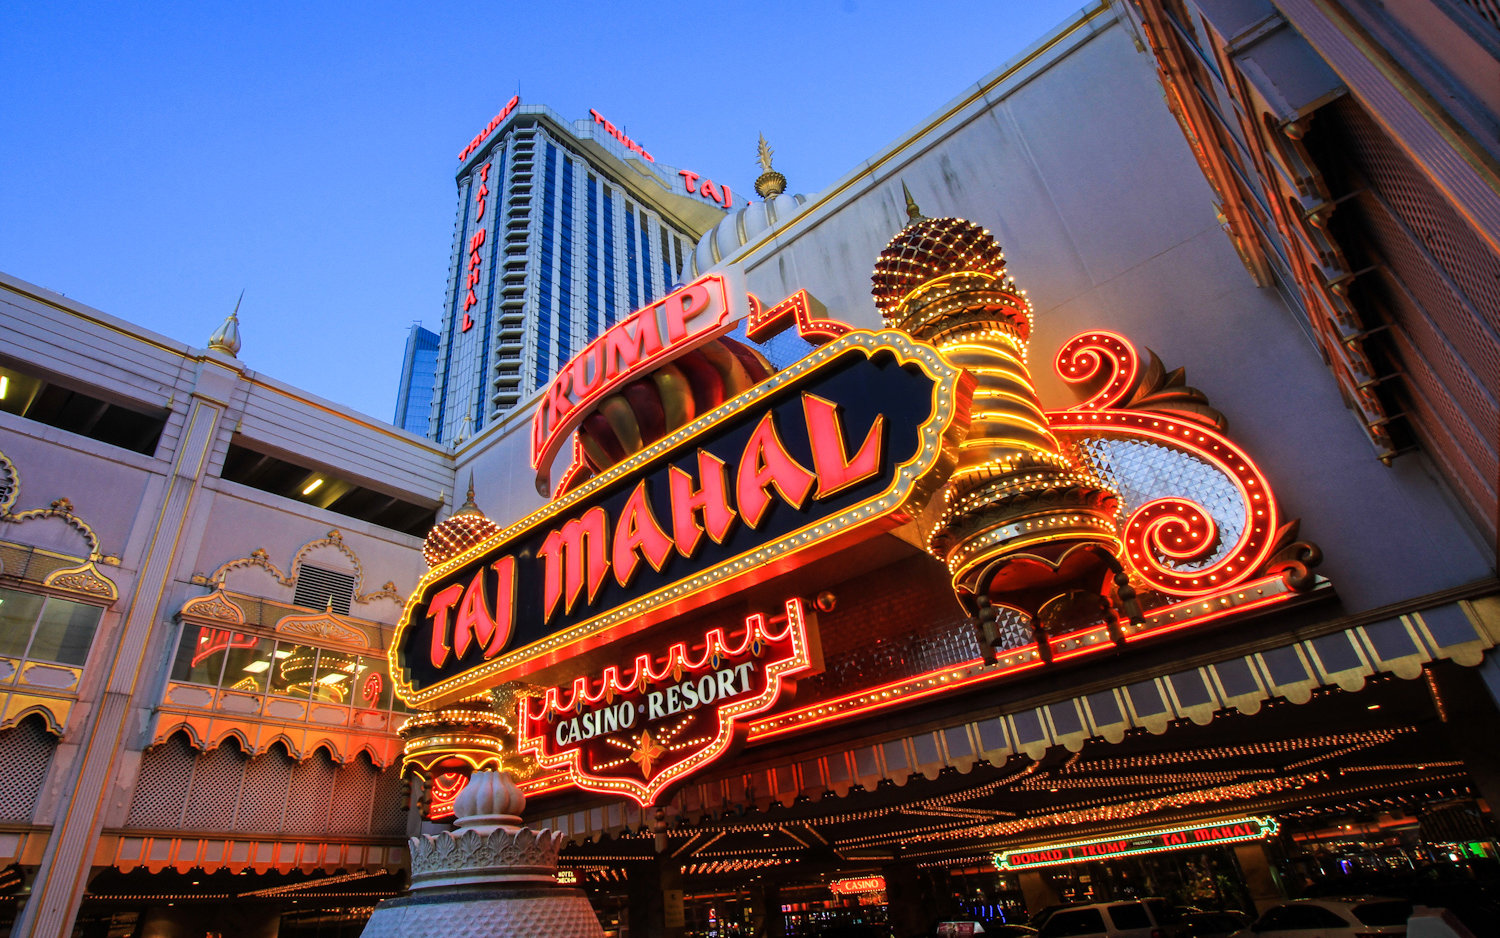 Trump Taj Mahal Officially Closes After Losing 350